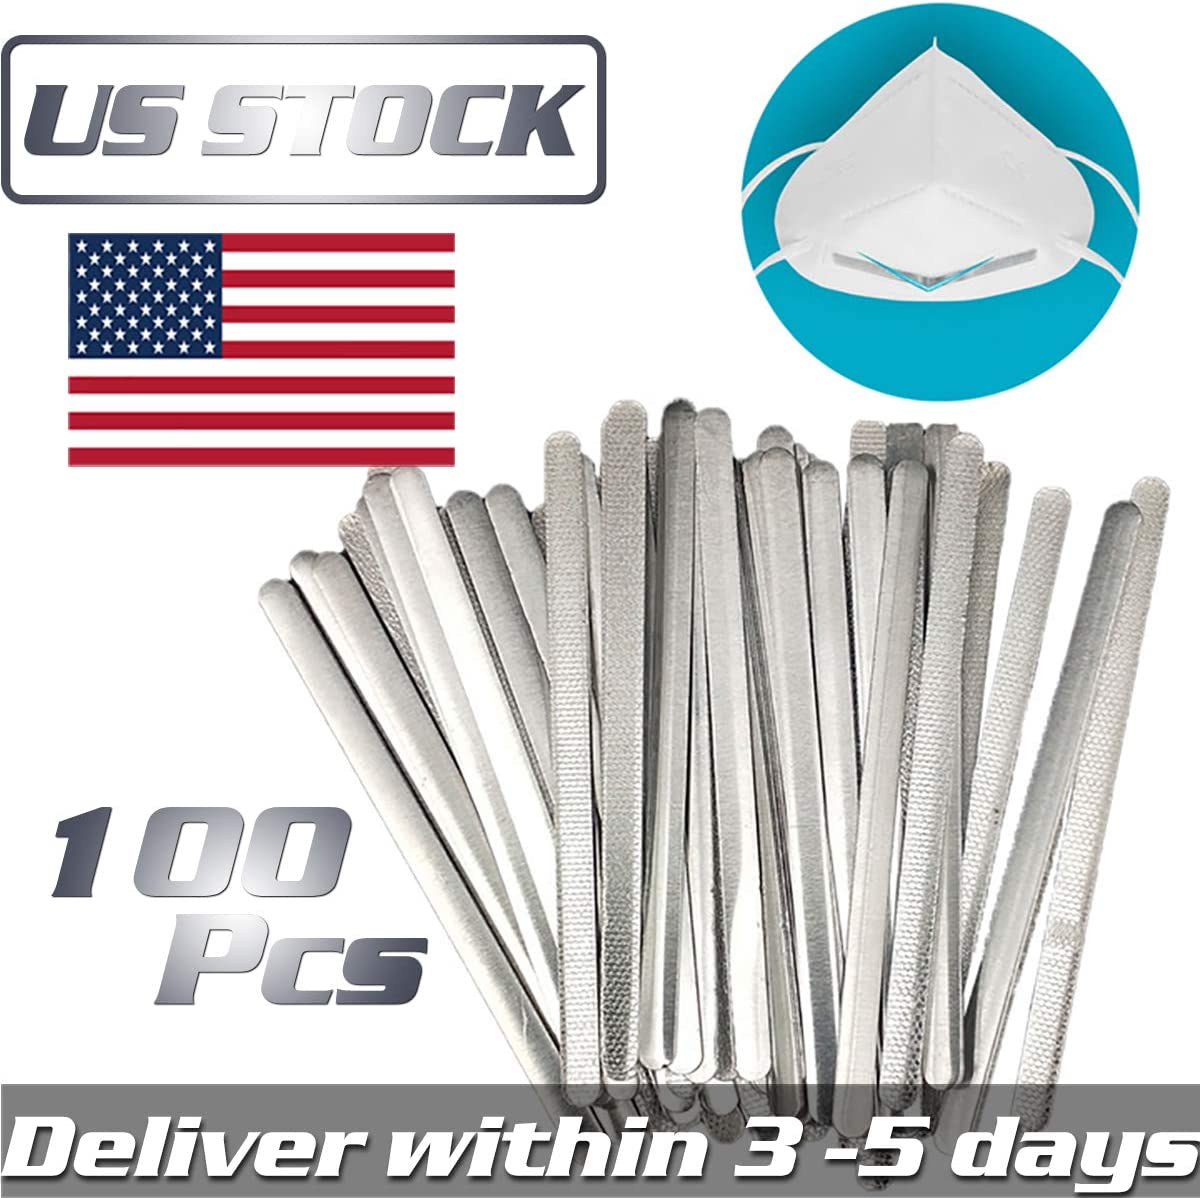 Aluminum Strips Nose Bridge Wire DIY Handmade Nose Pads for Face DIY Making Accessories and Nose Area for Crafting Mask Nose Adjuster Bridge Wire 100 Pcs